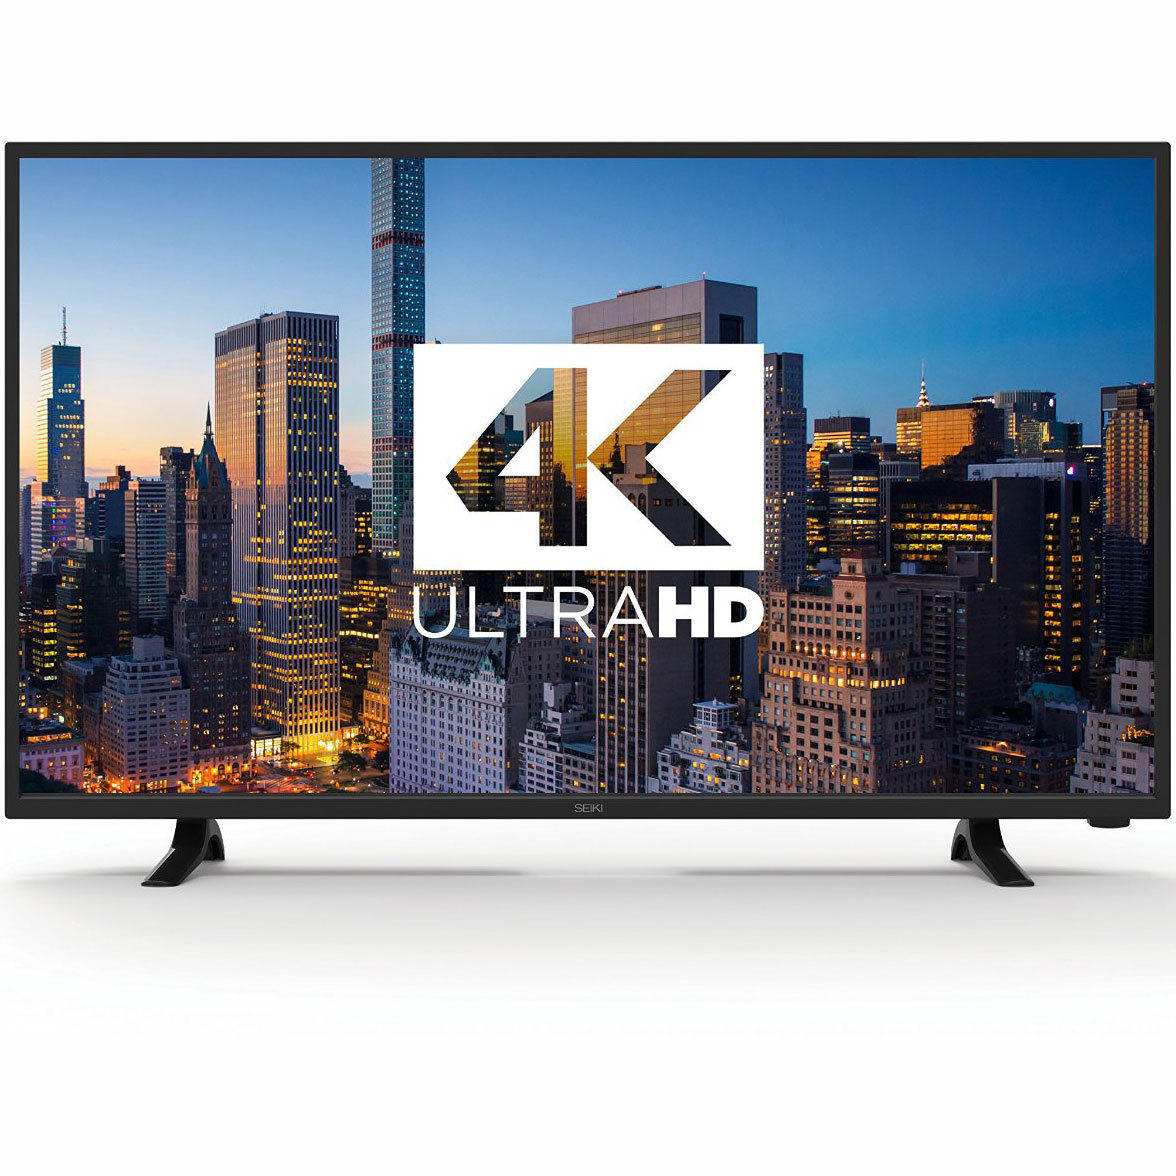 Seiki SE42UMS 42-Inch 4K Ultra HD LED HDTV